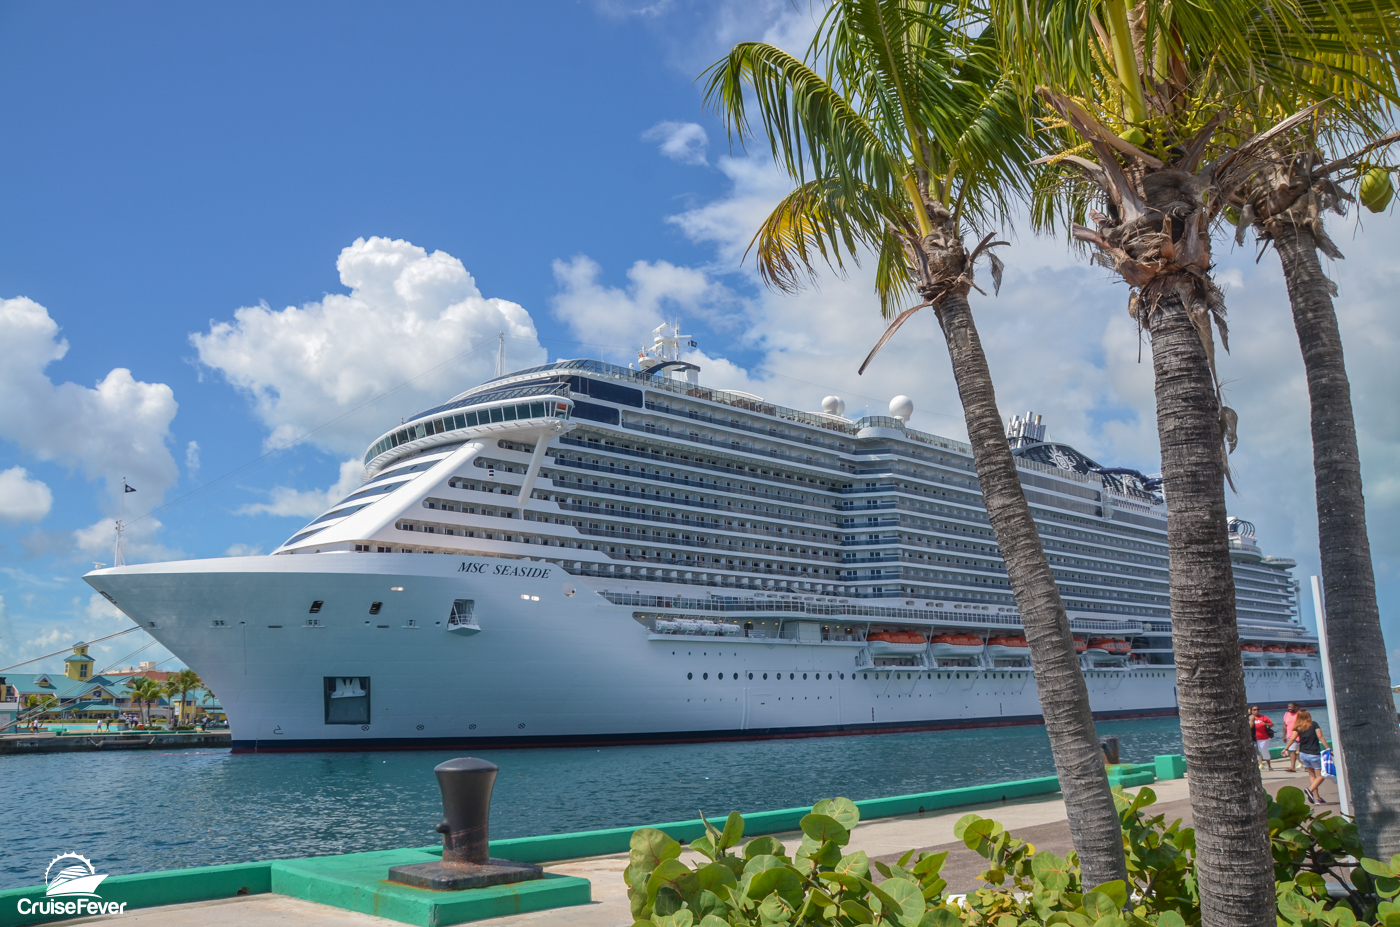 Cruise Line Offering Balcony Cabins at Ocean View Prices on